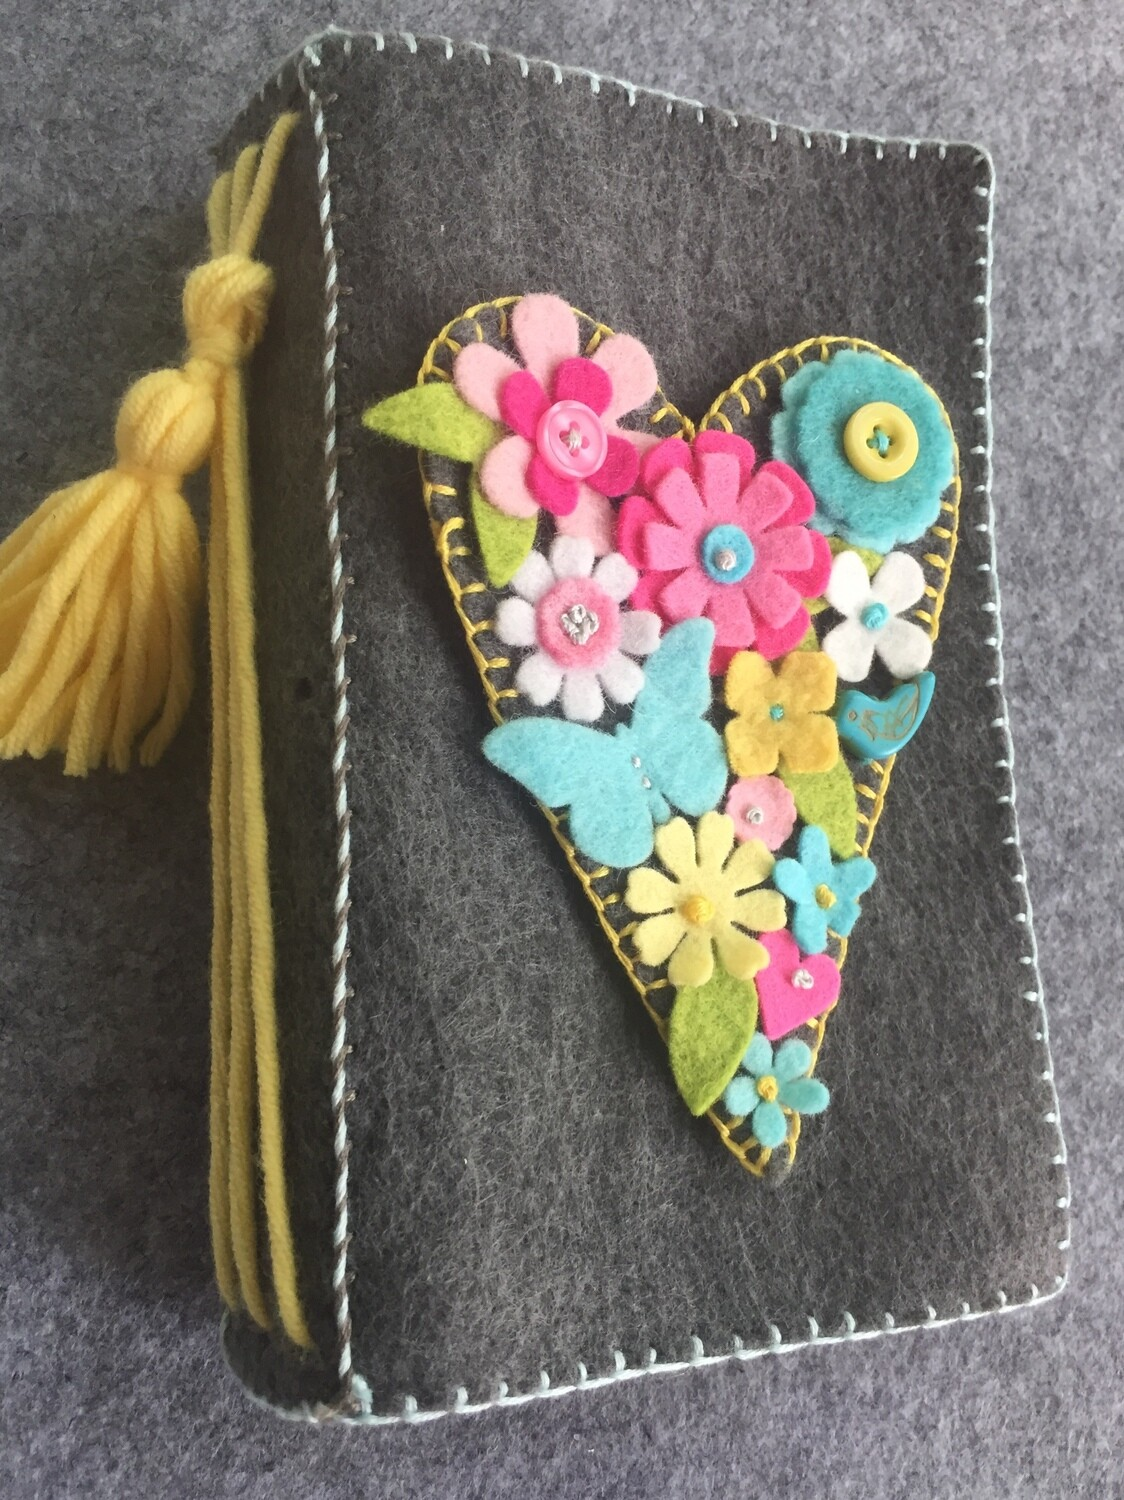 Stitched Sampler workshop with Eileen Hull (Paper Trail UK Tour) 8 September 2019